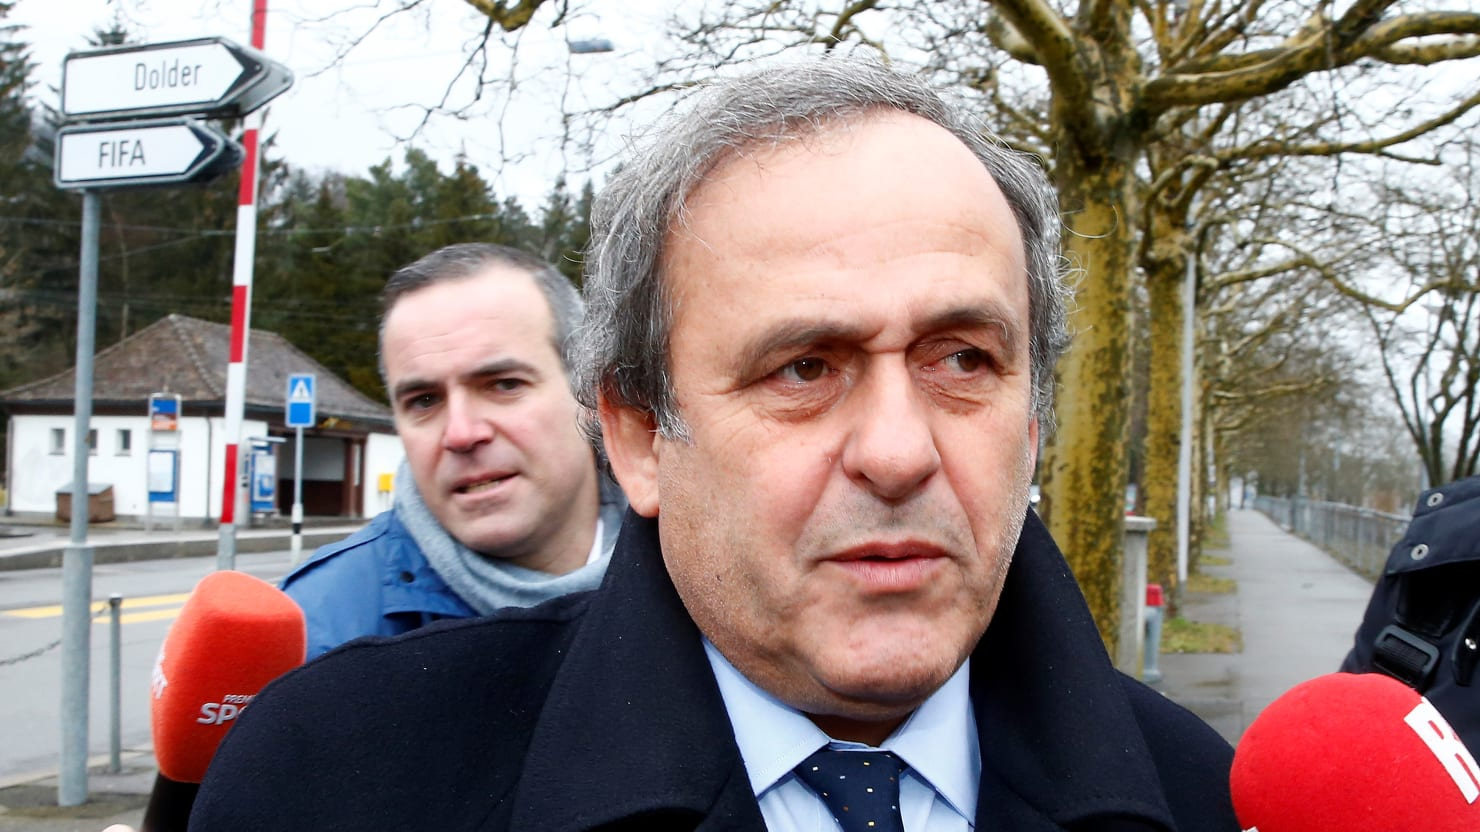 Former Euro Soccer Boss Michel Platini Reportedly Arrested Over Qatar World Cup Corruption Allegations